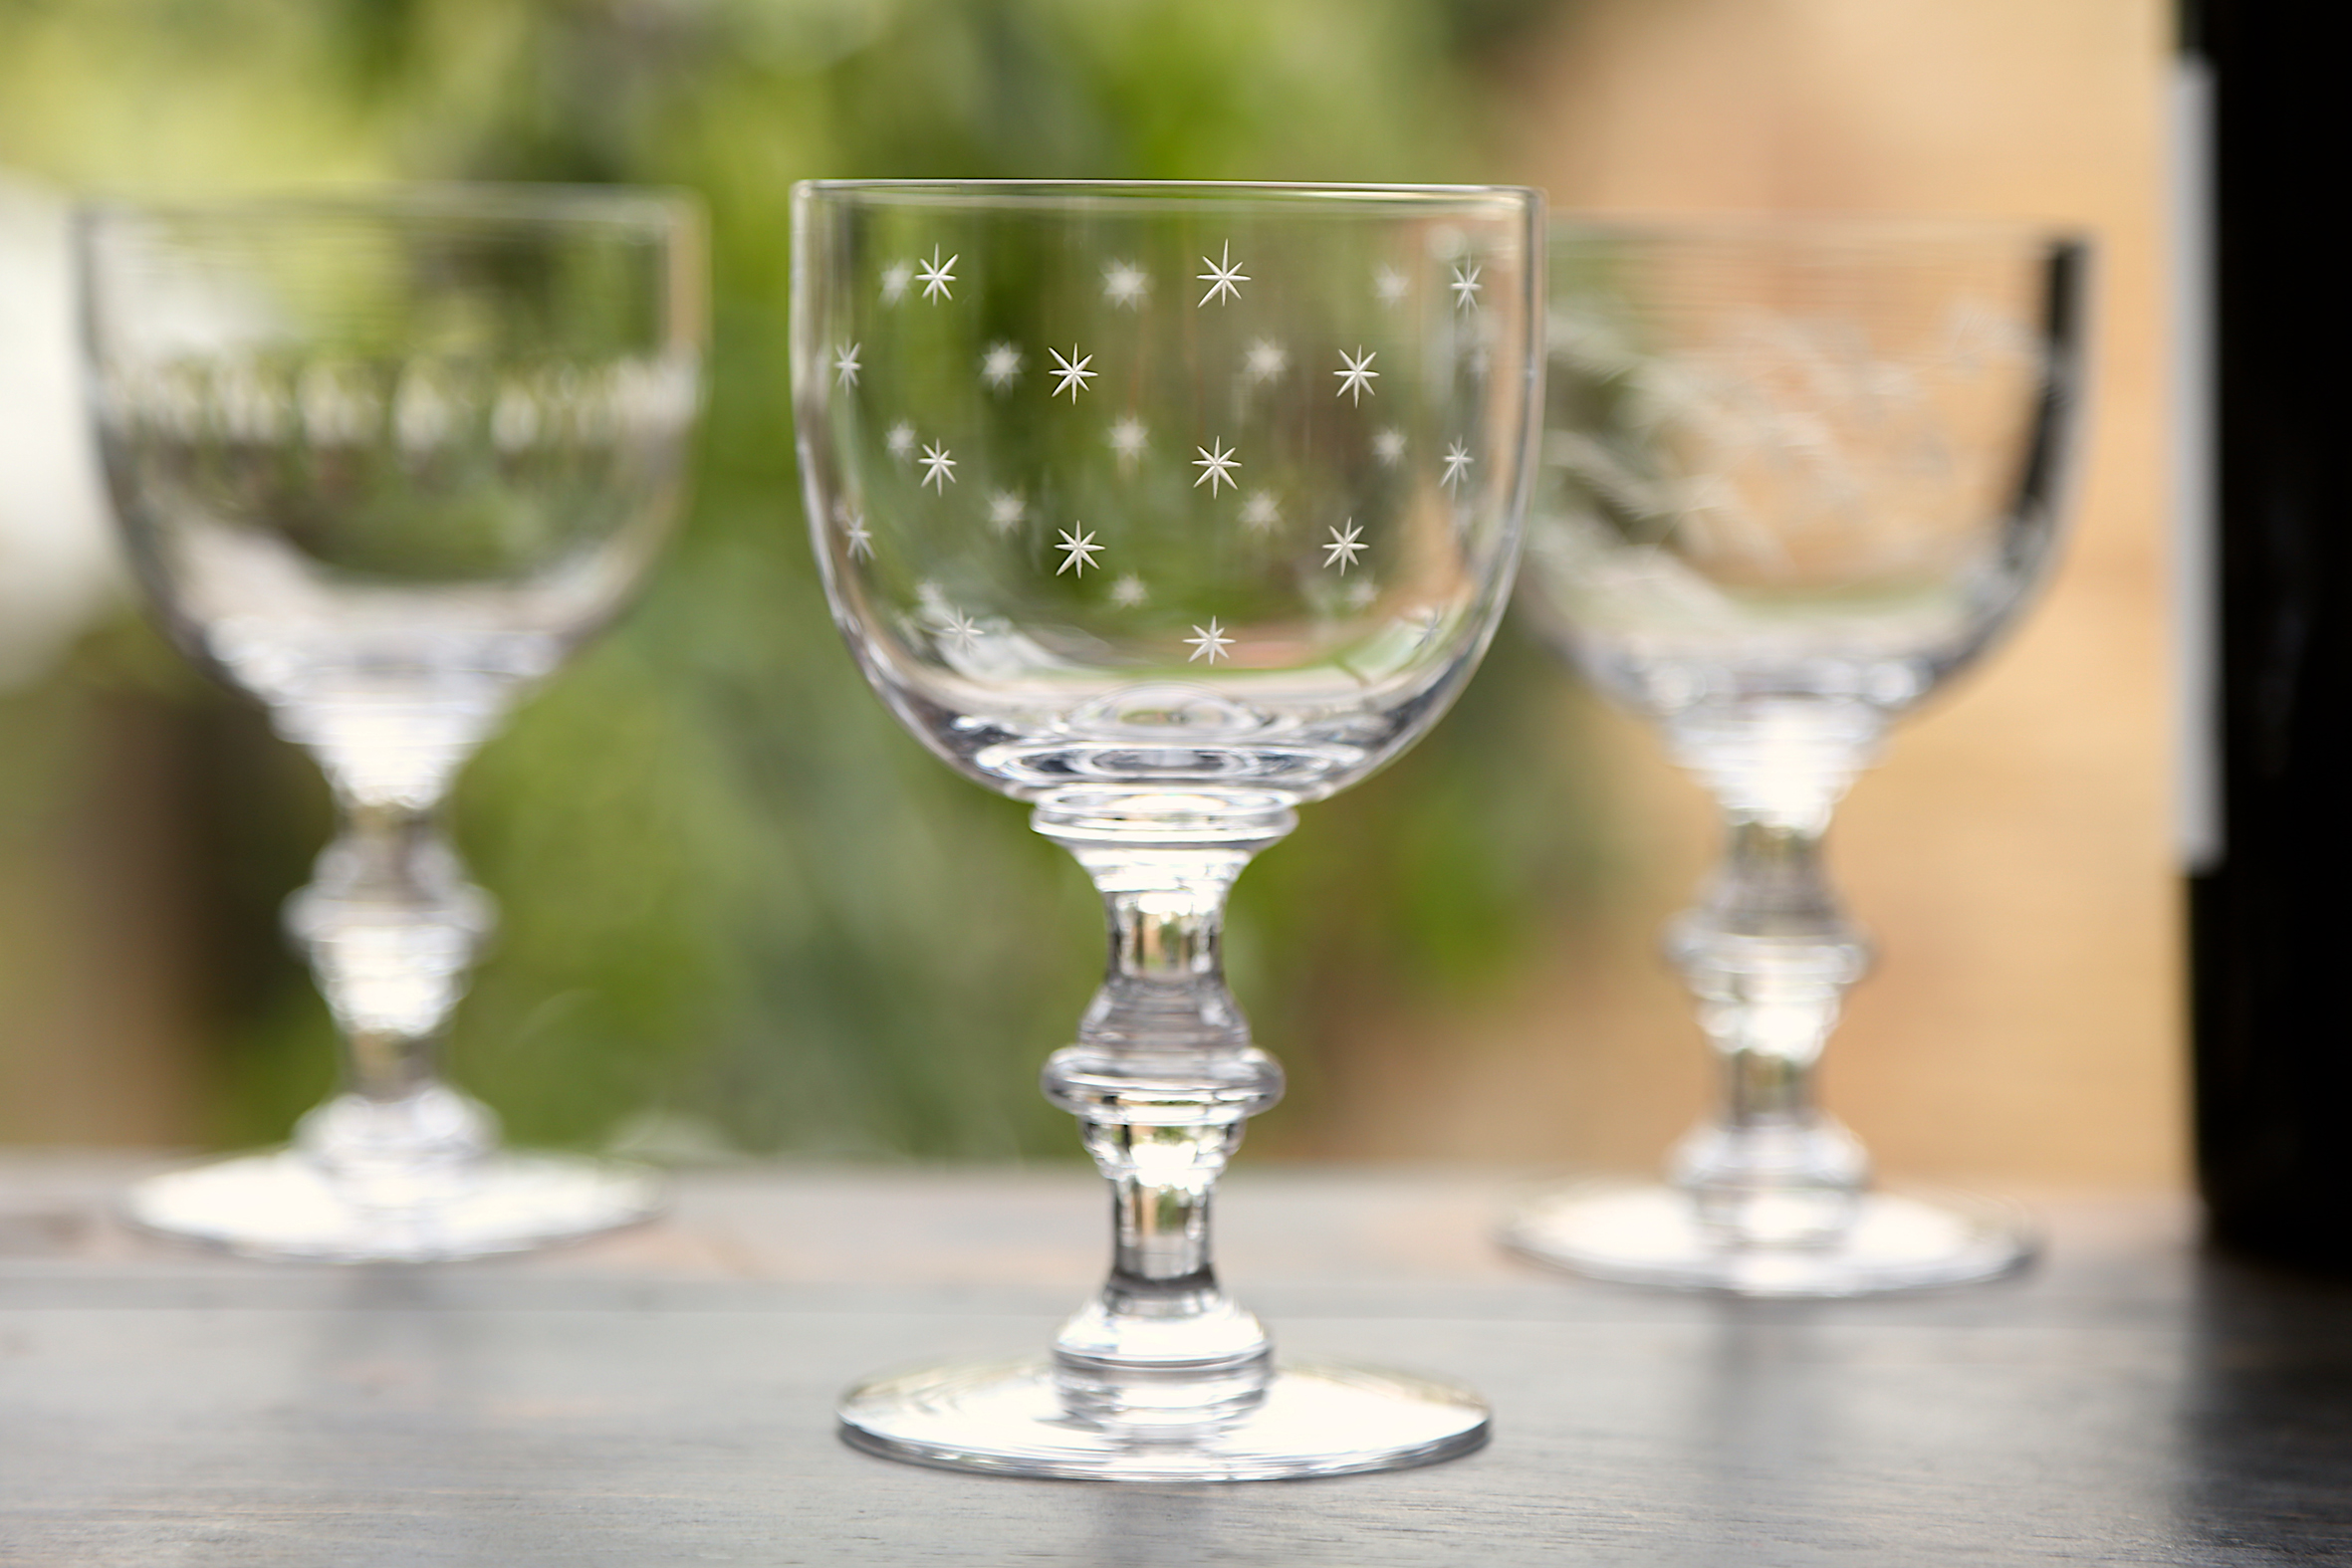 WINE GOBLETS   This glass has a sturdy, baluster stem and a much more delicate bowl. 14.c cm tall; 8.5 cm wide at rim; capacity: 250 ml